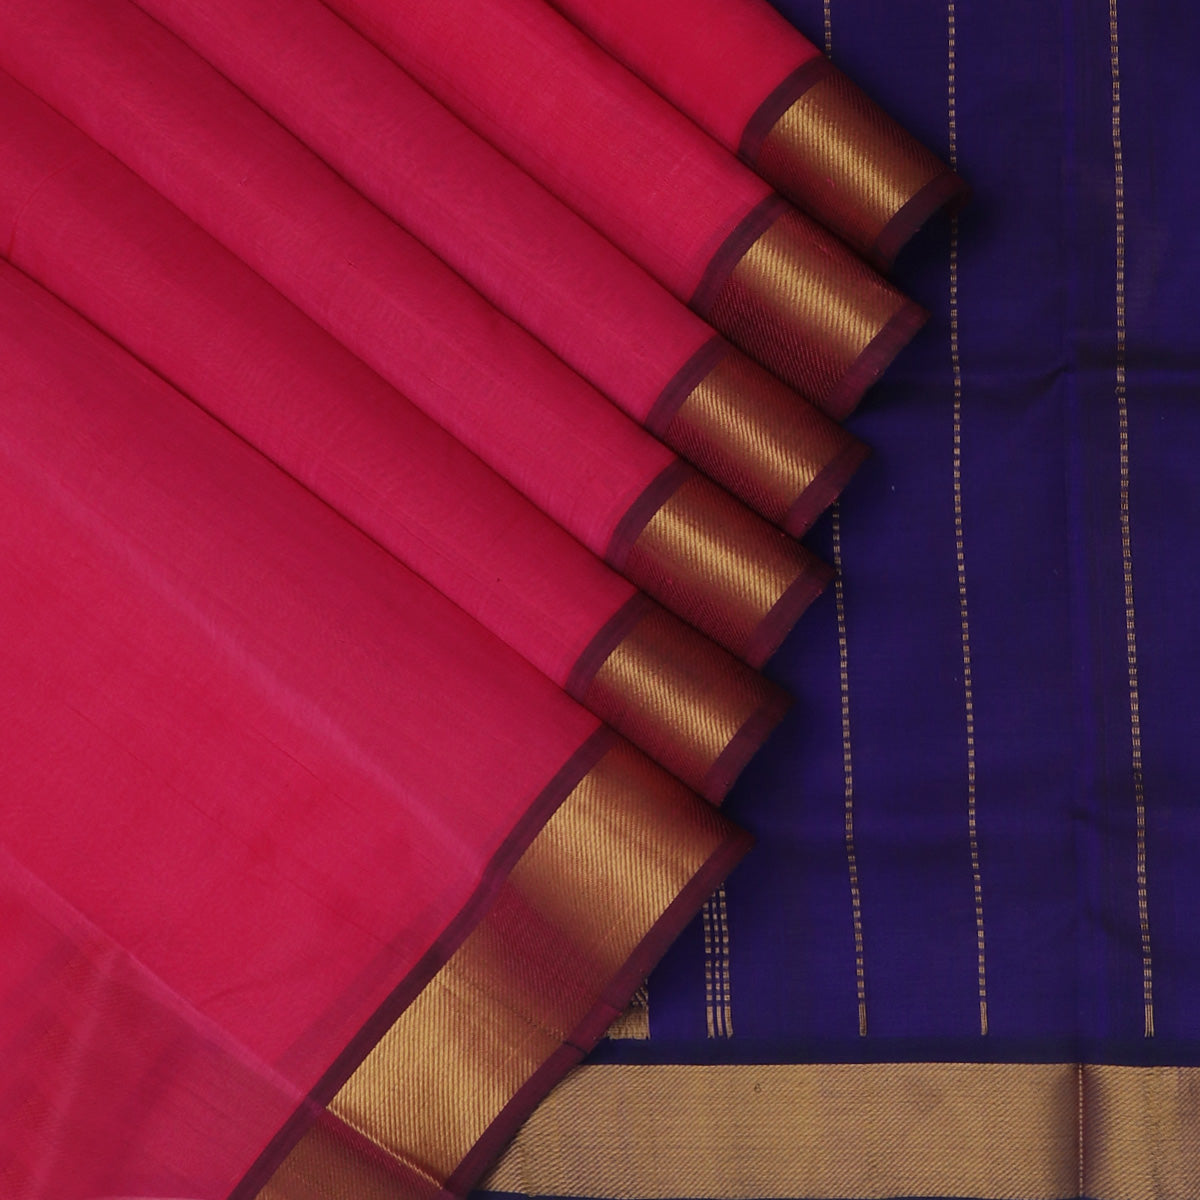 Silk Cotton Seree Dual Shade Of Pink and Blue with Zari border